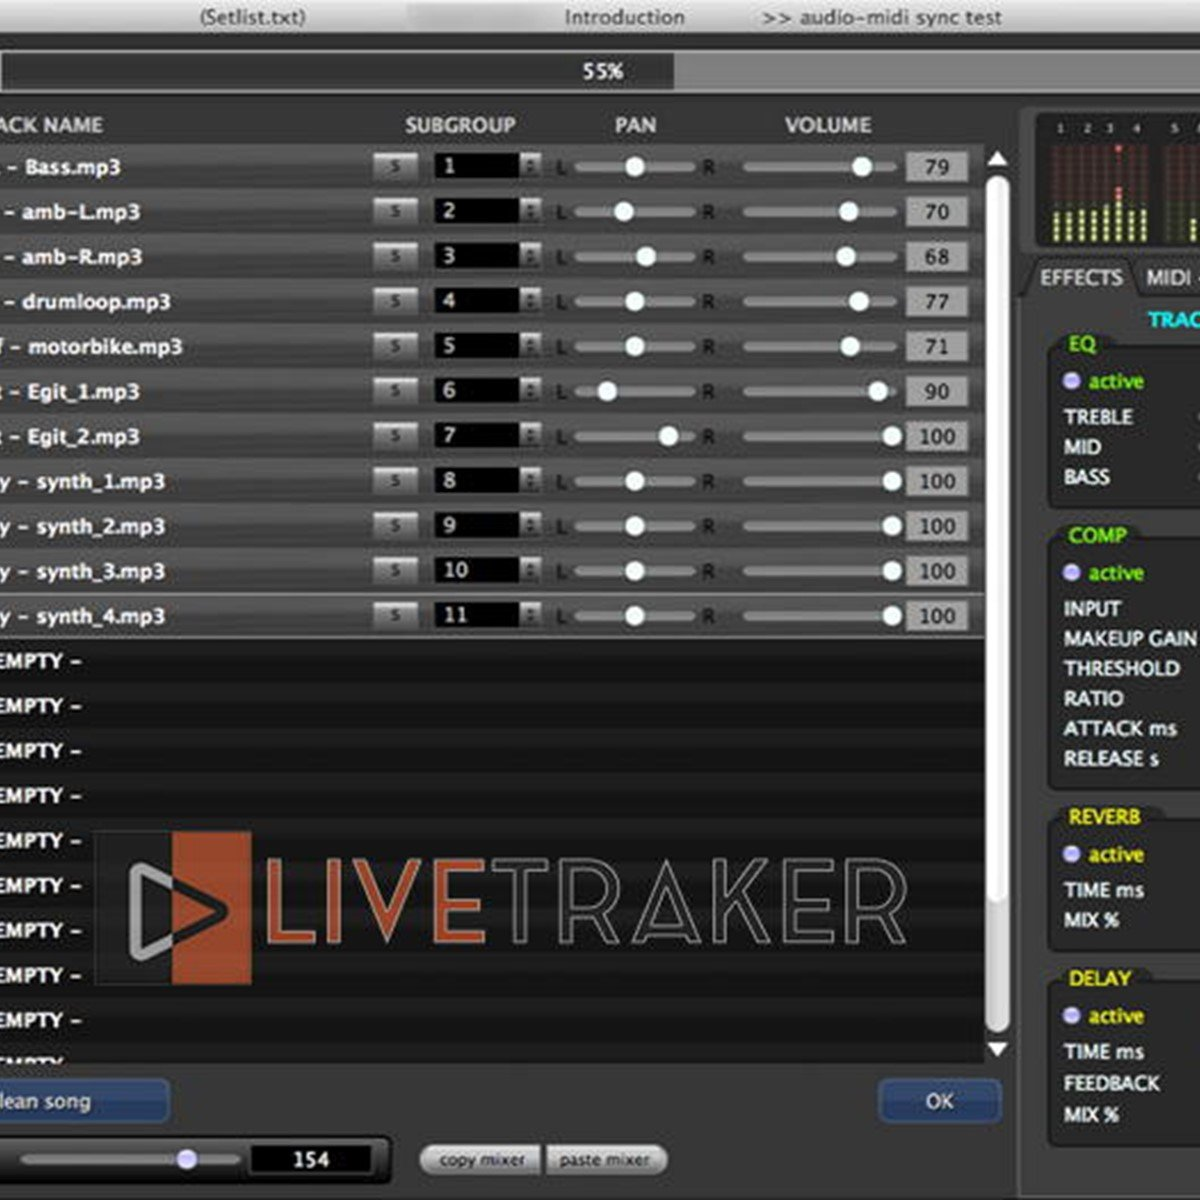 Livetraker Audio Midi Player Alternatives and Similar